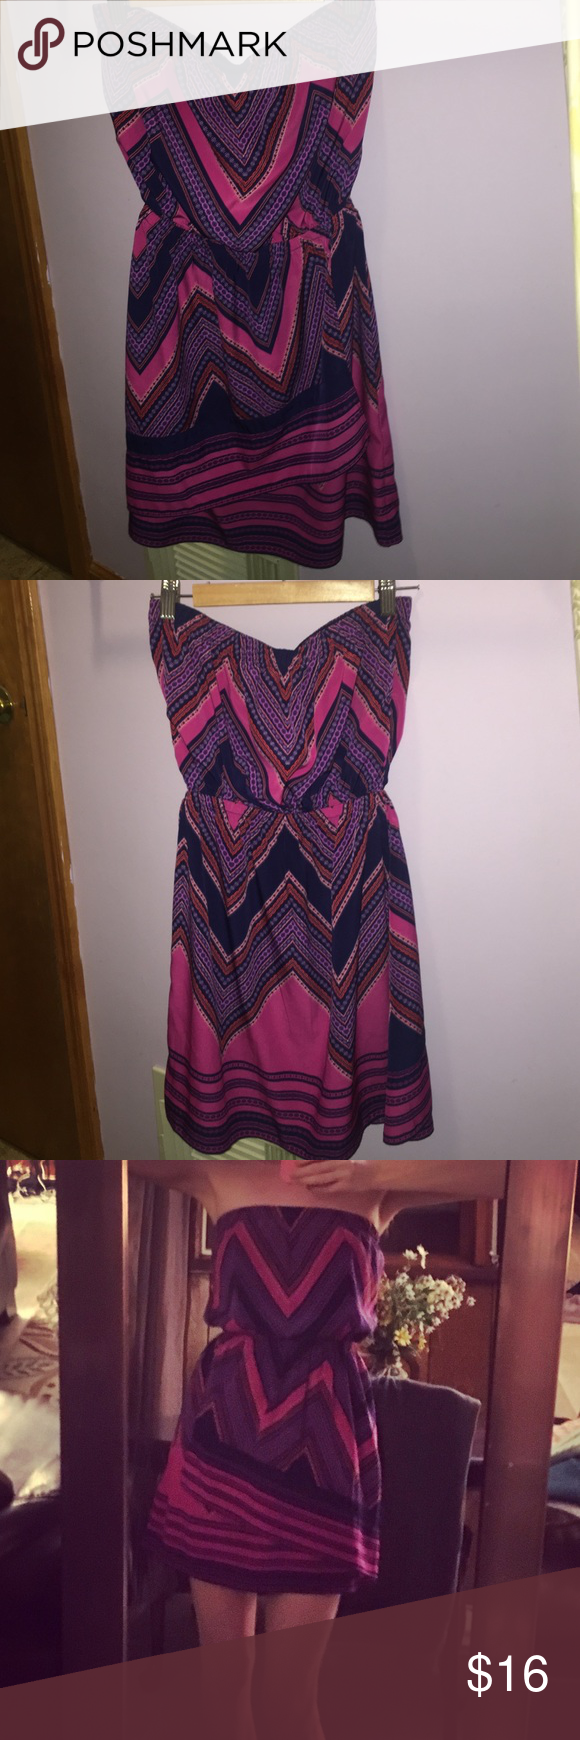 💗Express Strapless Dress   Strapless dress, Express dresses and Flaws